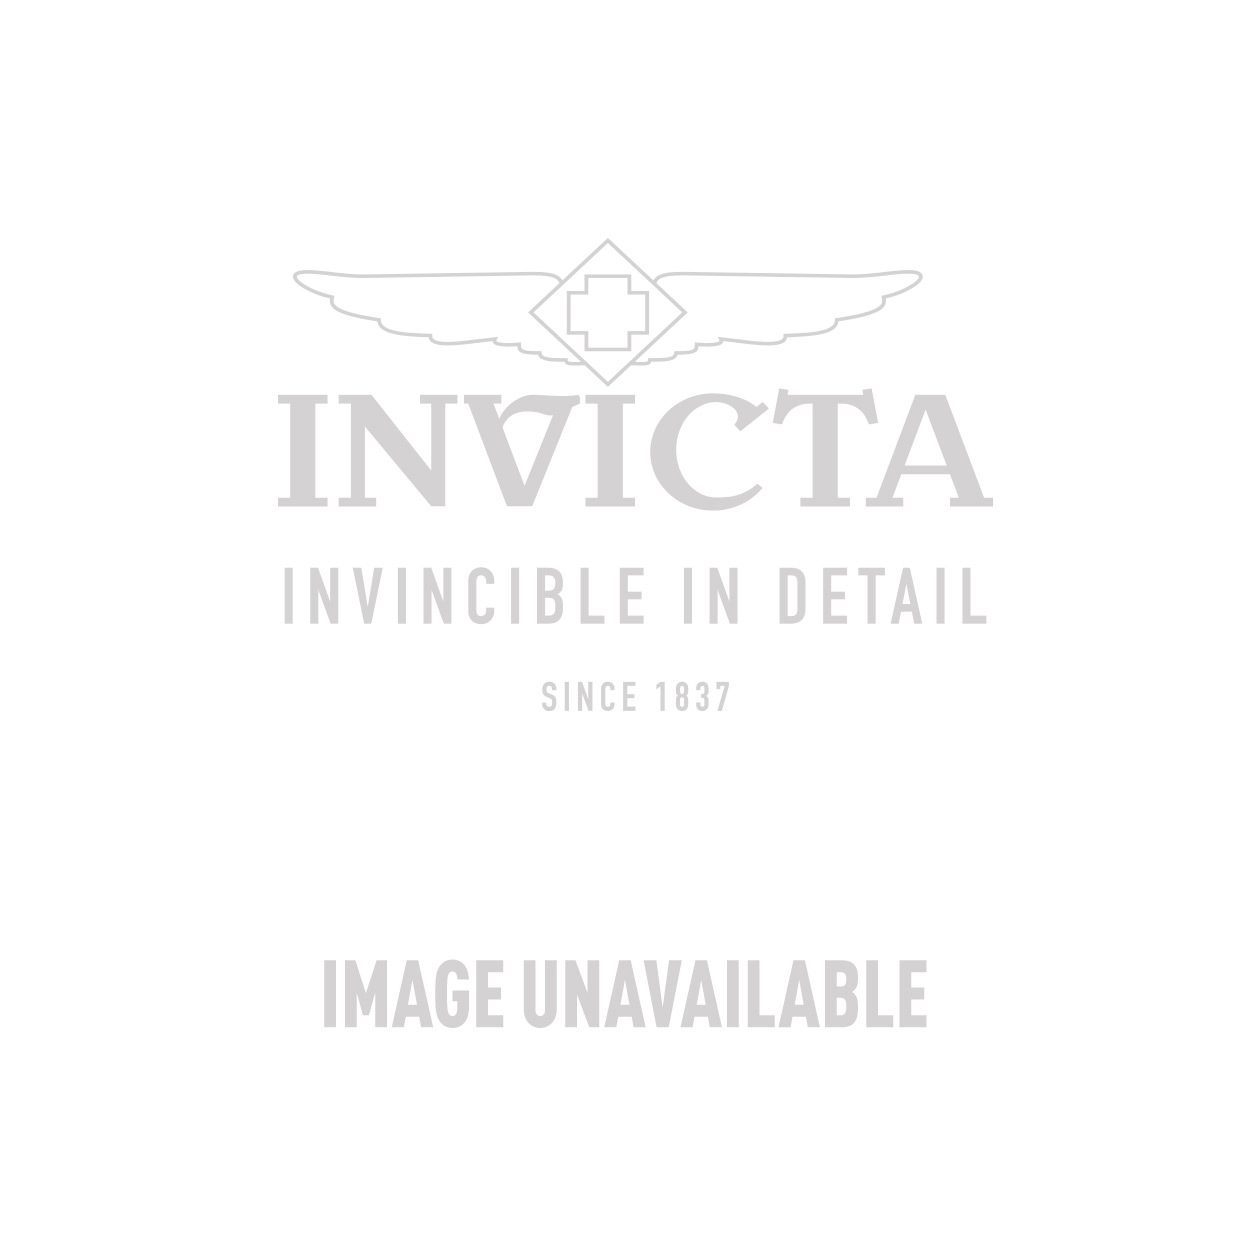 Invicta Sea Hunter Swiss Made Quartz Watch - Stainless Steel case with Yellow tone Polyurethane band - Model 1689